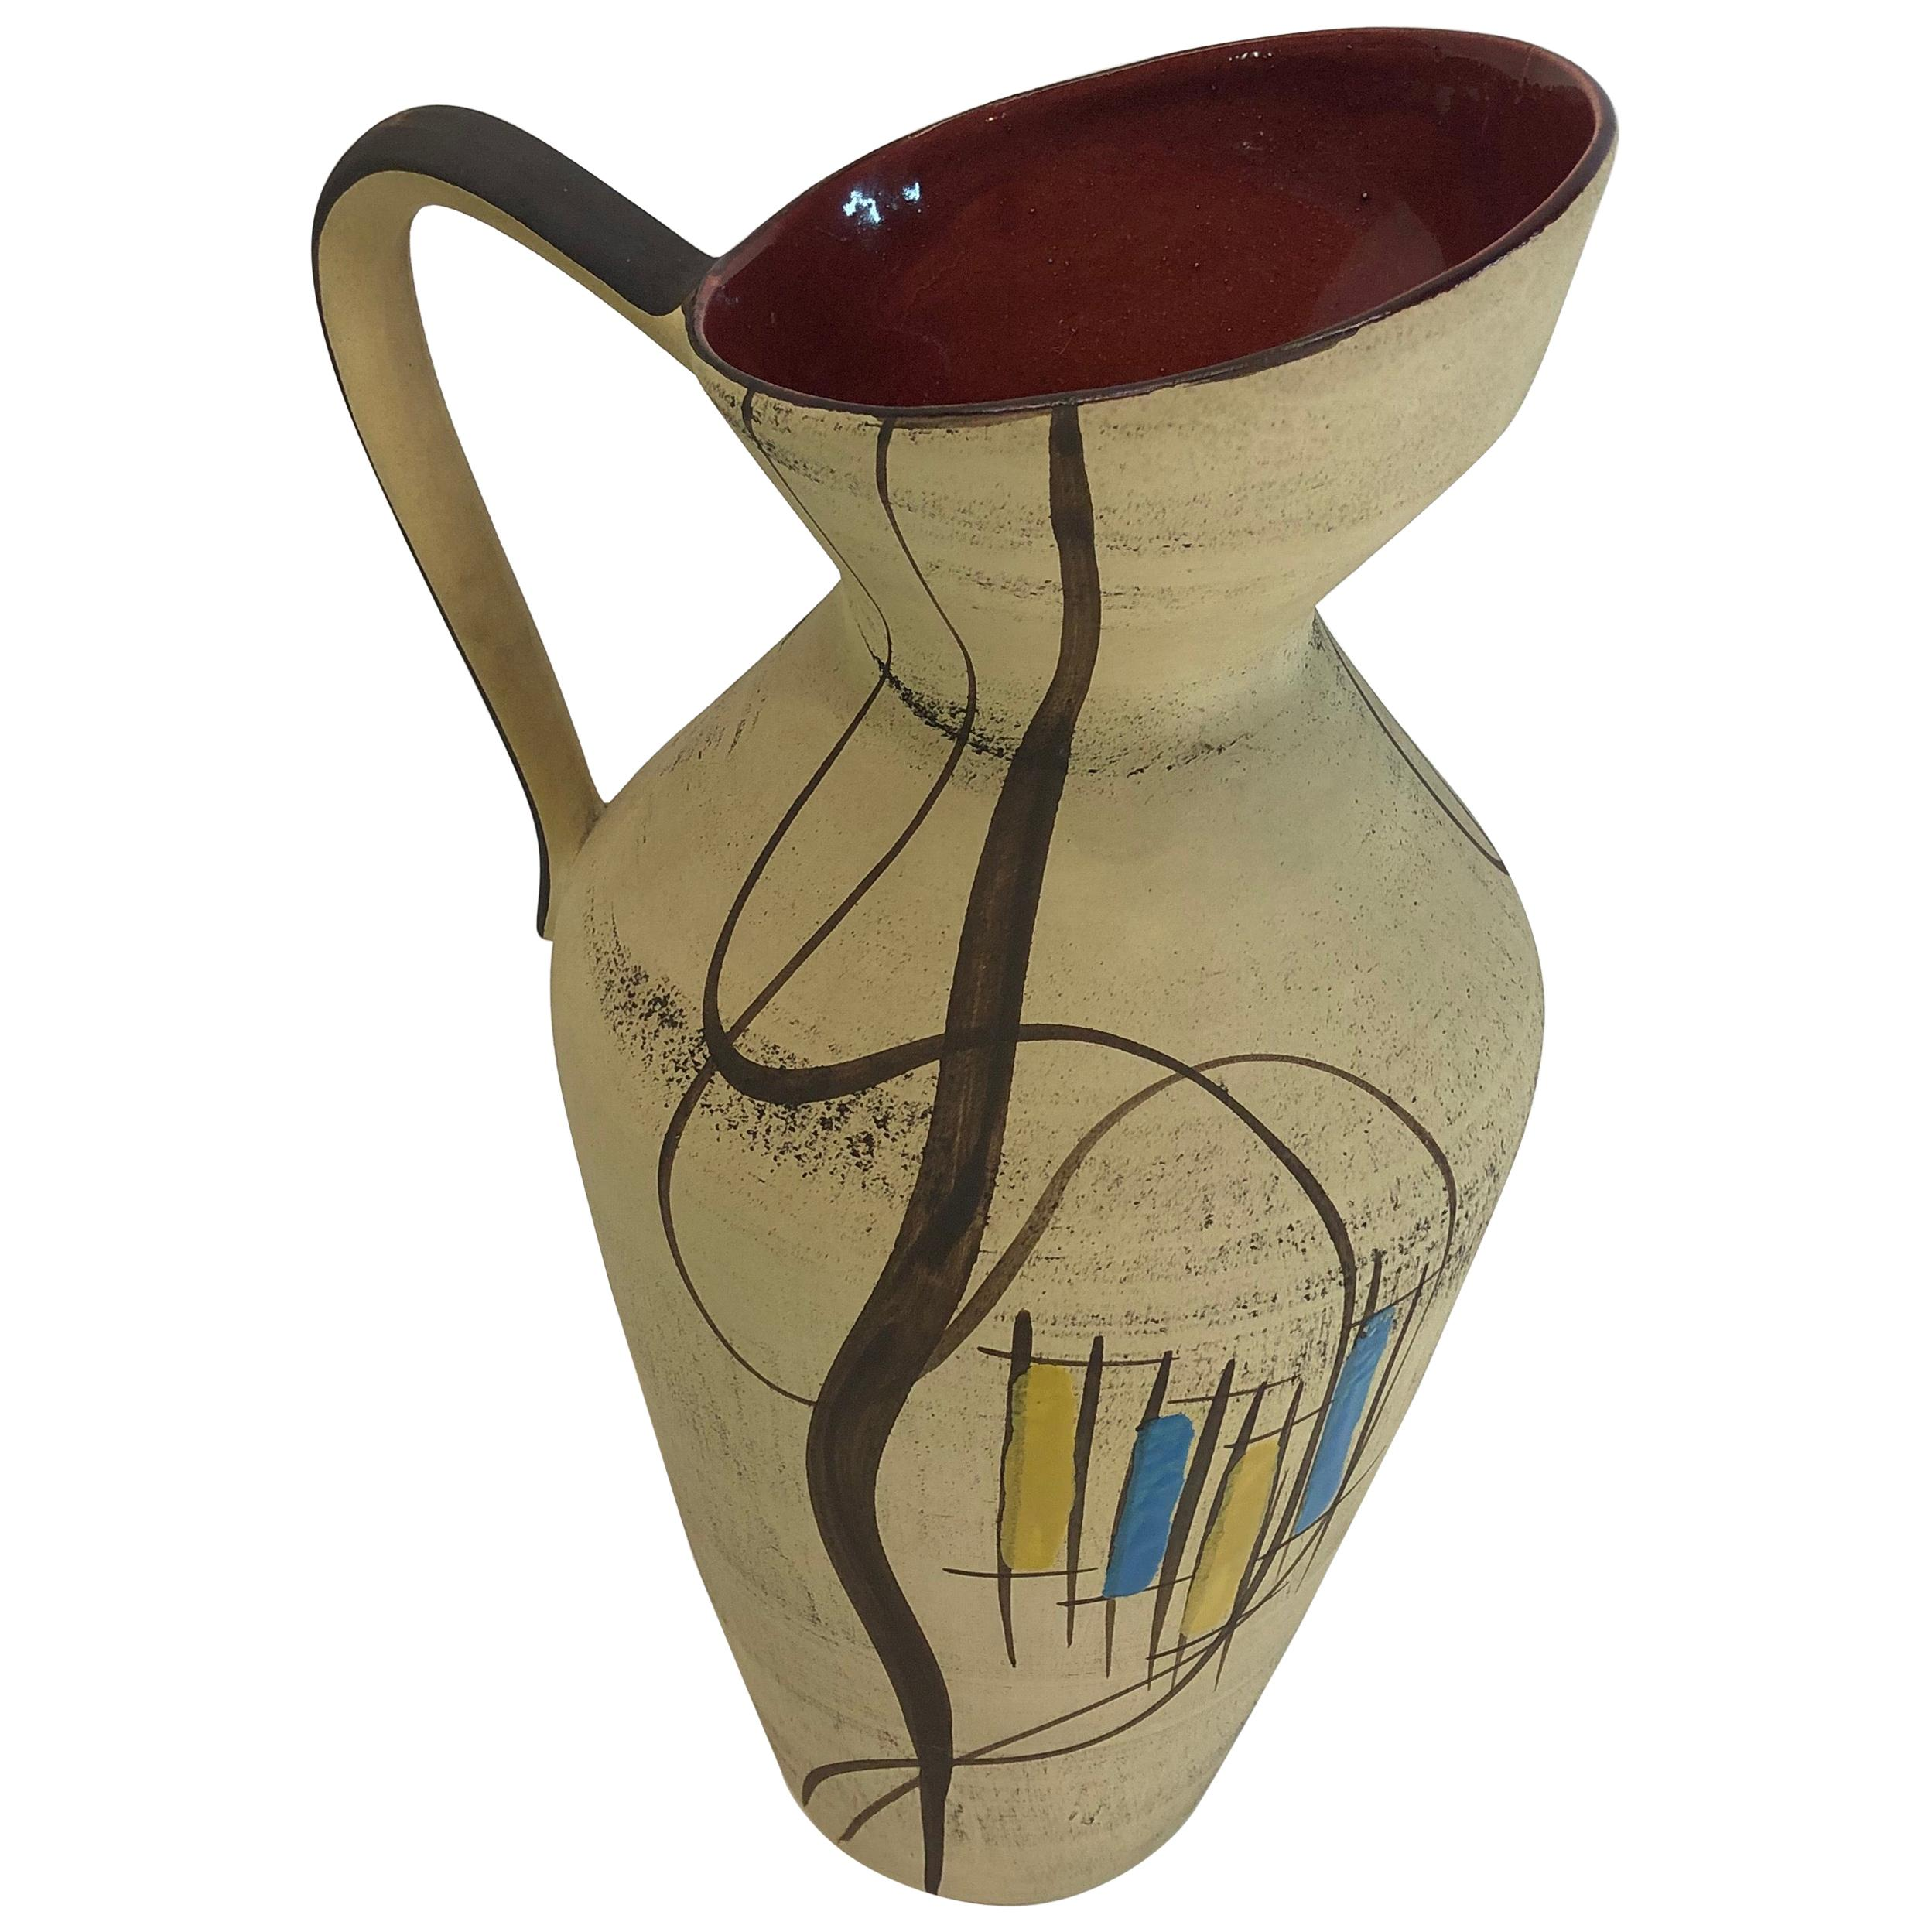 Hand Painted Bay Ceramic Pitcher/Vase, West-Germany by Bodo Mans, 1950